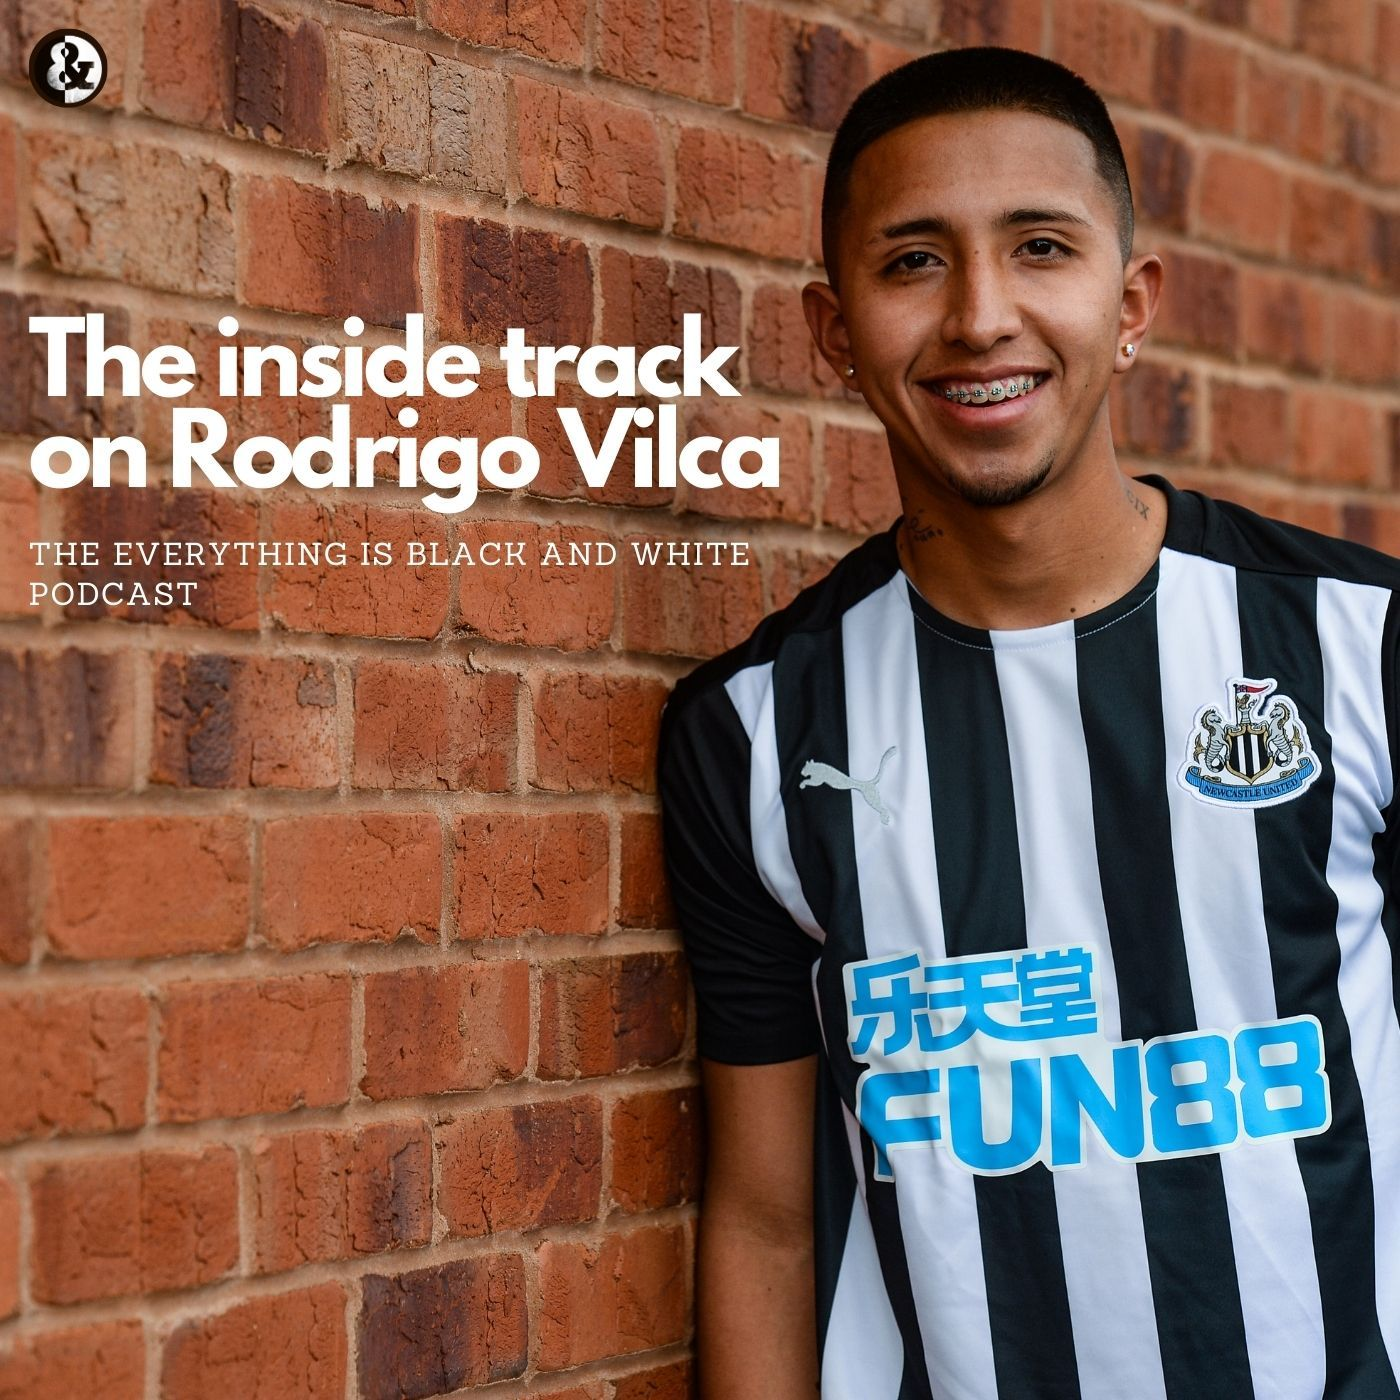 The inside track on Rodrigo Vilca with CBS Sports' Luis Miguel Echegaray